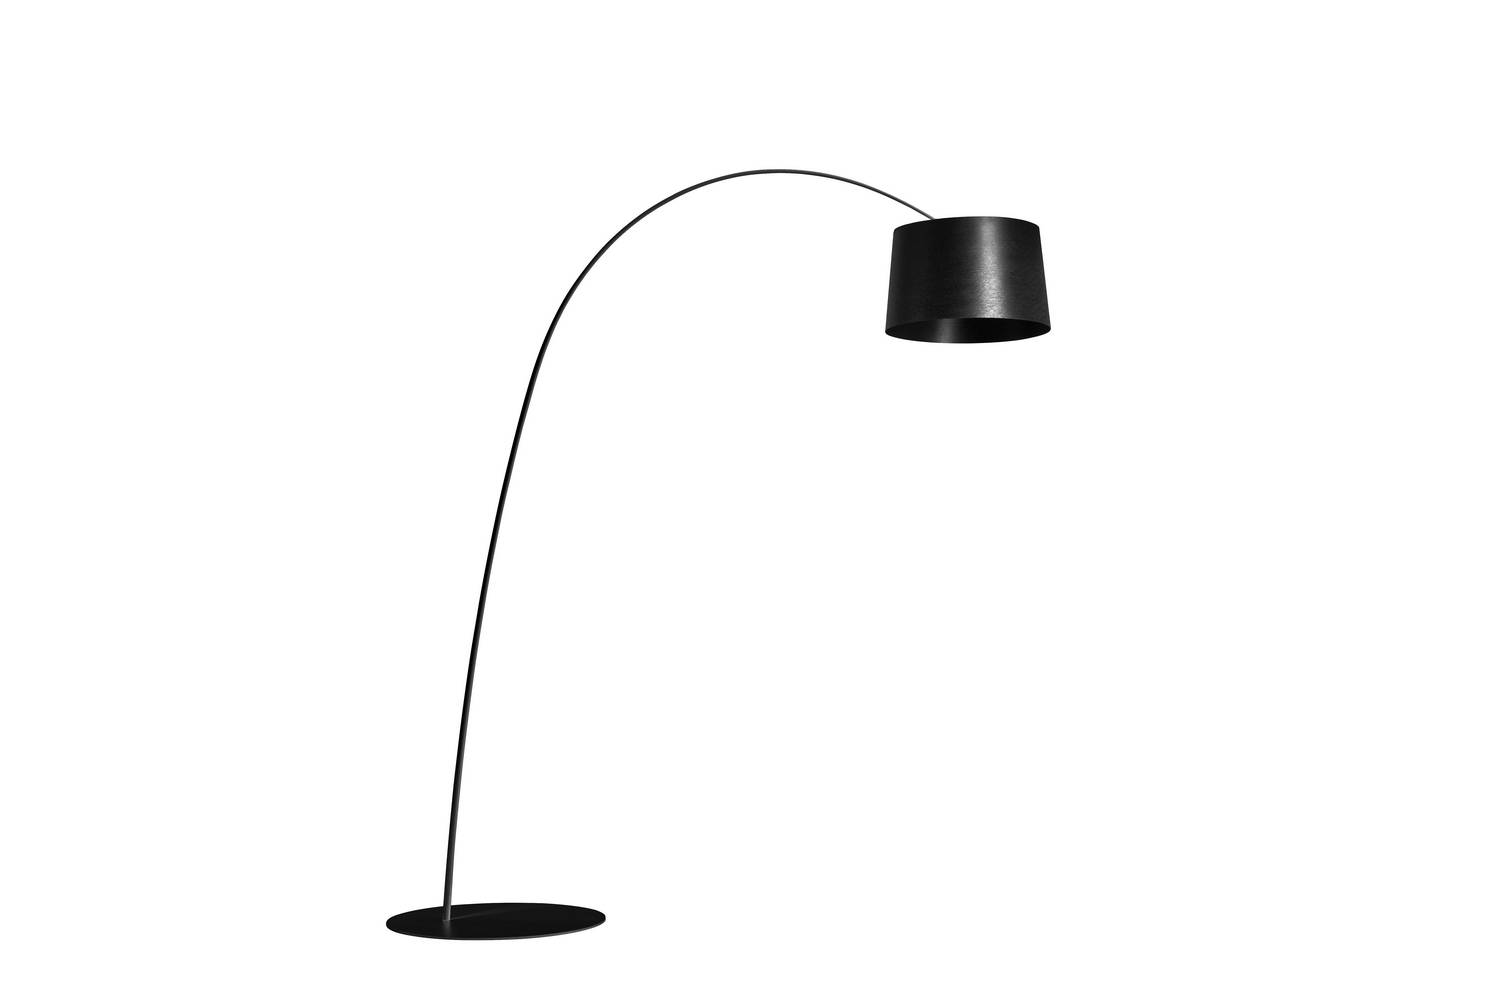 Stehlampe Dimmer Twiggy Led Floor Lamp By Marc Sadler For Foscarini | Space